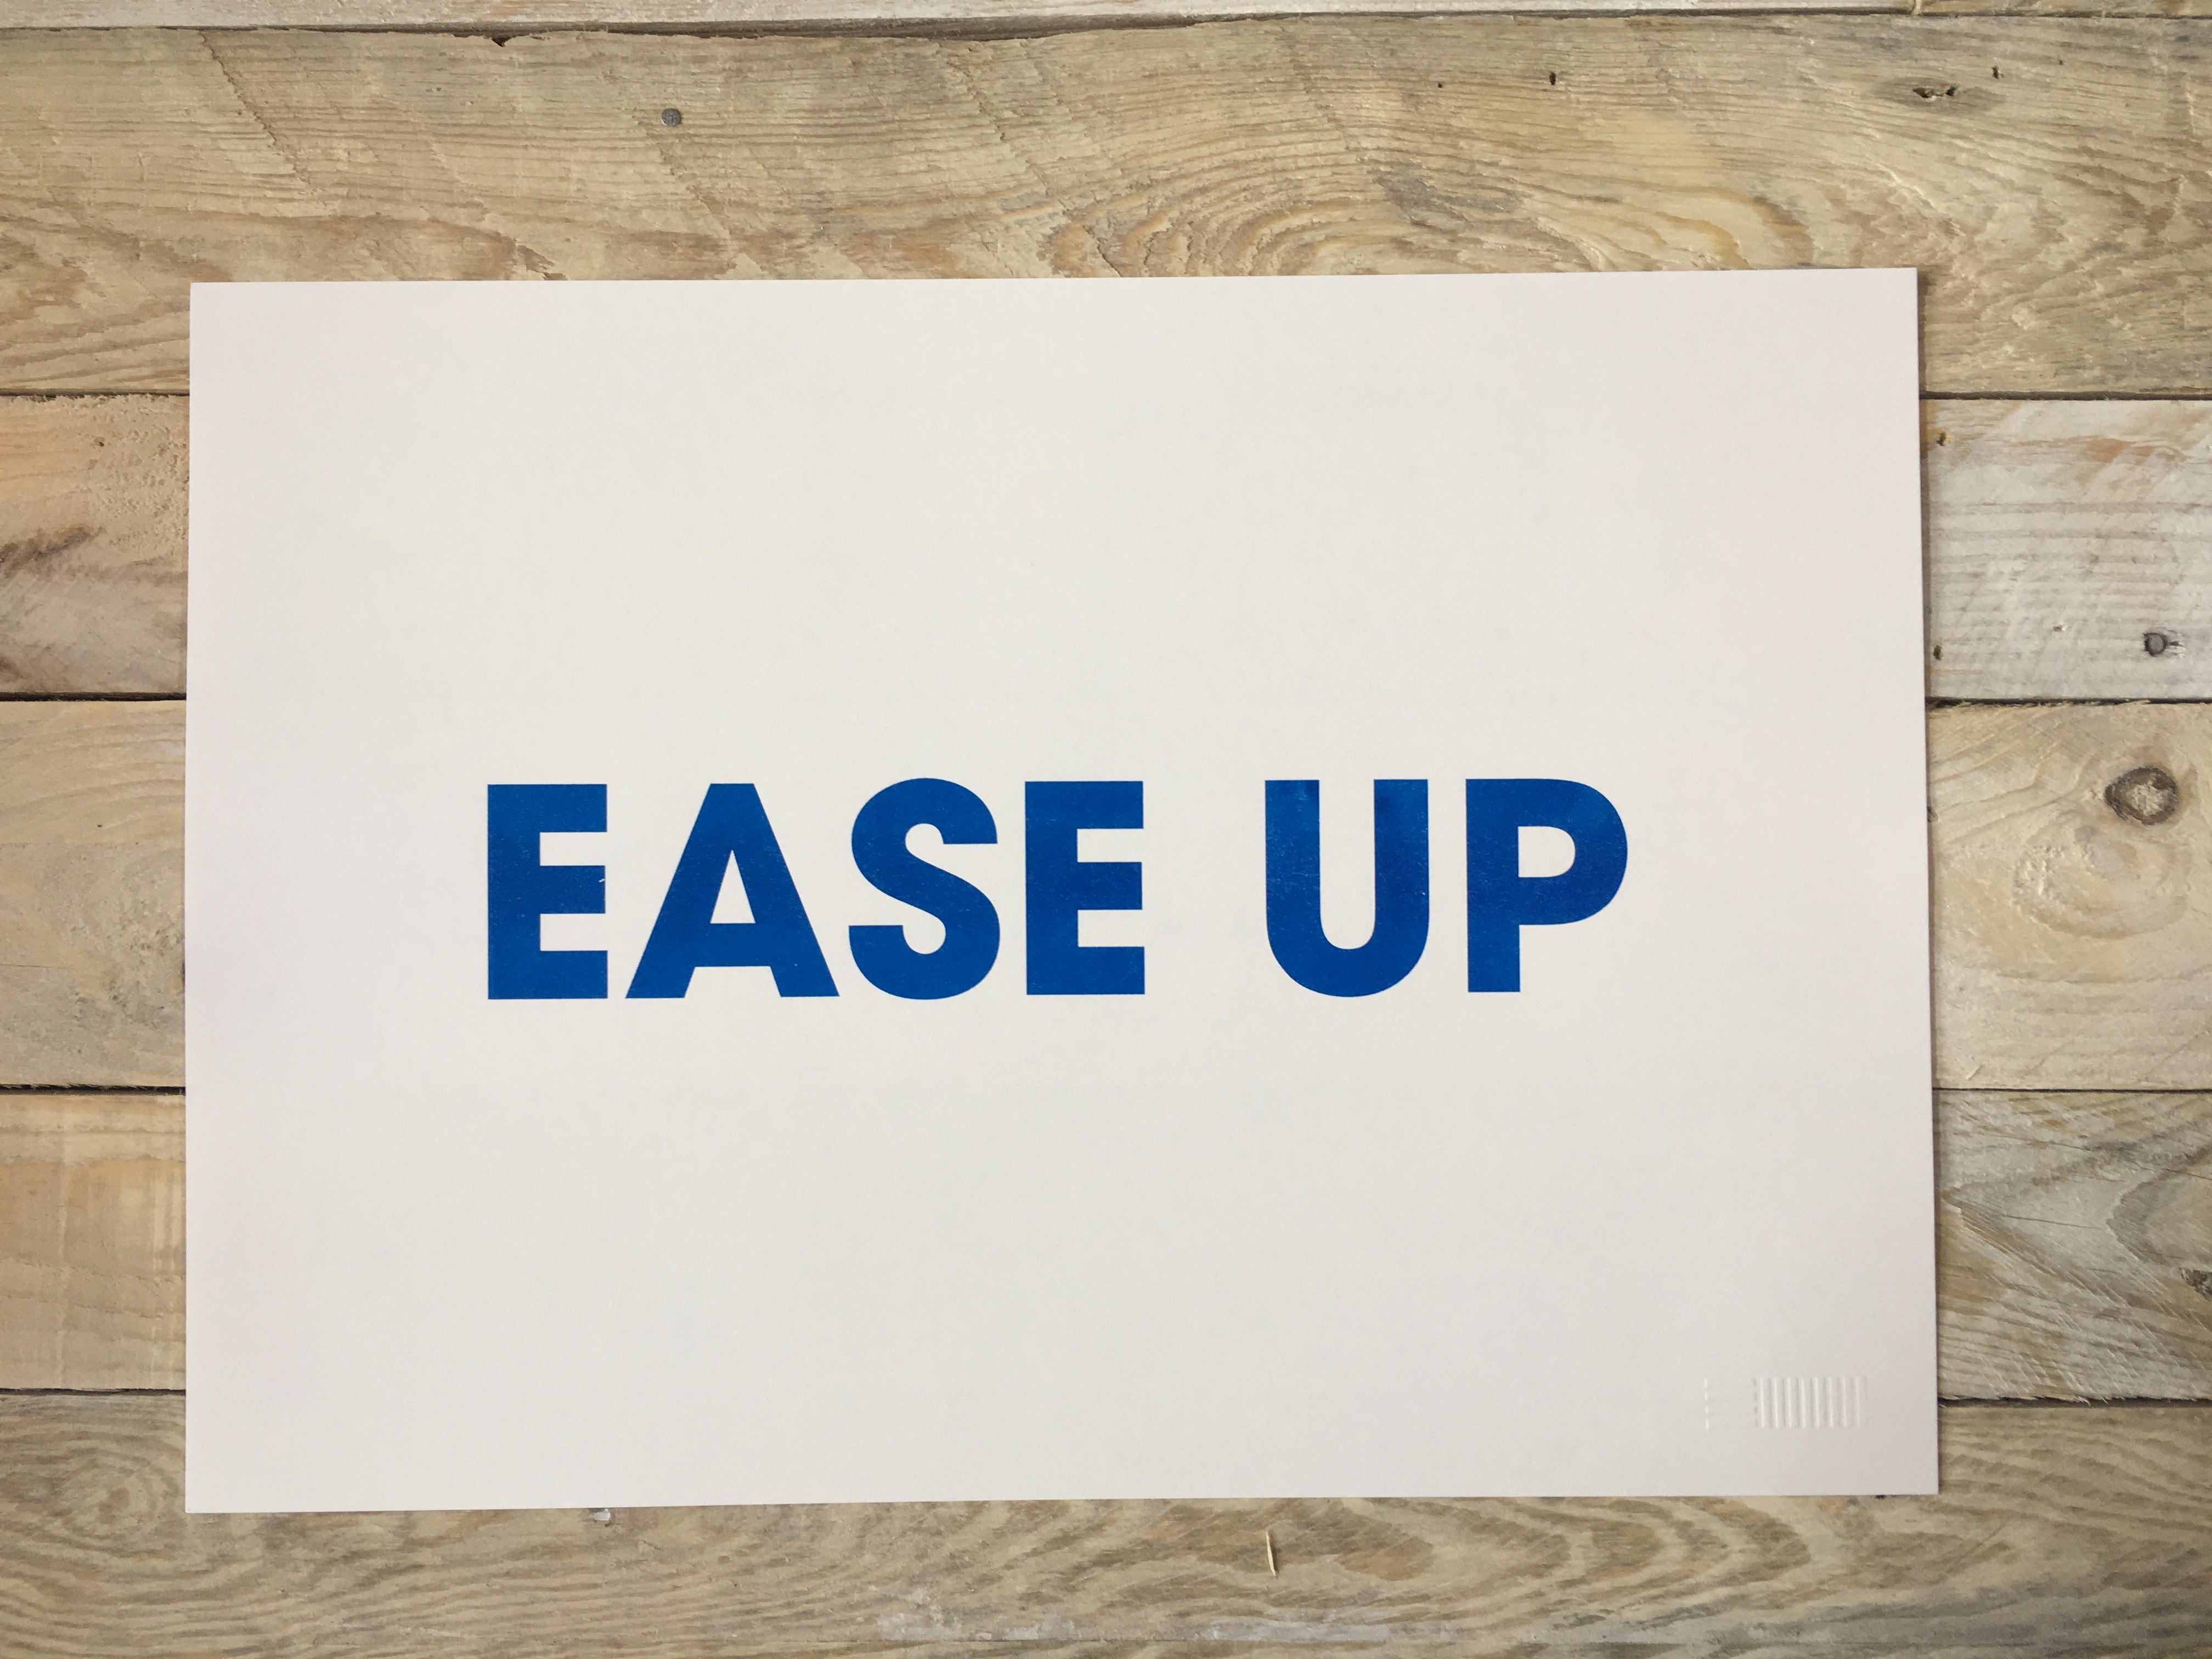 A3 EASE UP RISO PRINT - POMPEY TYPE SERIES - foursandeights